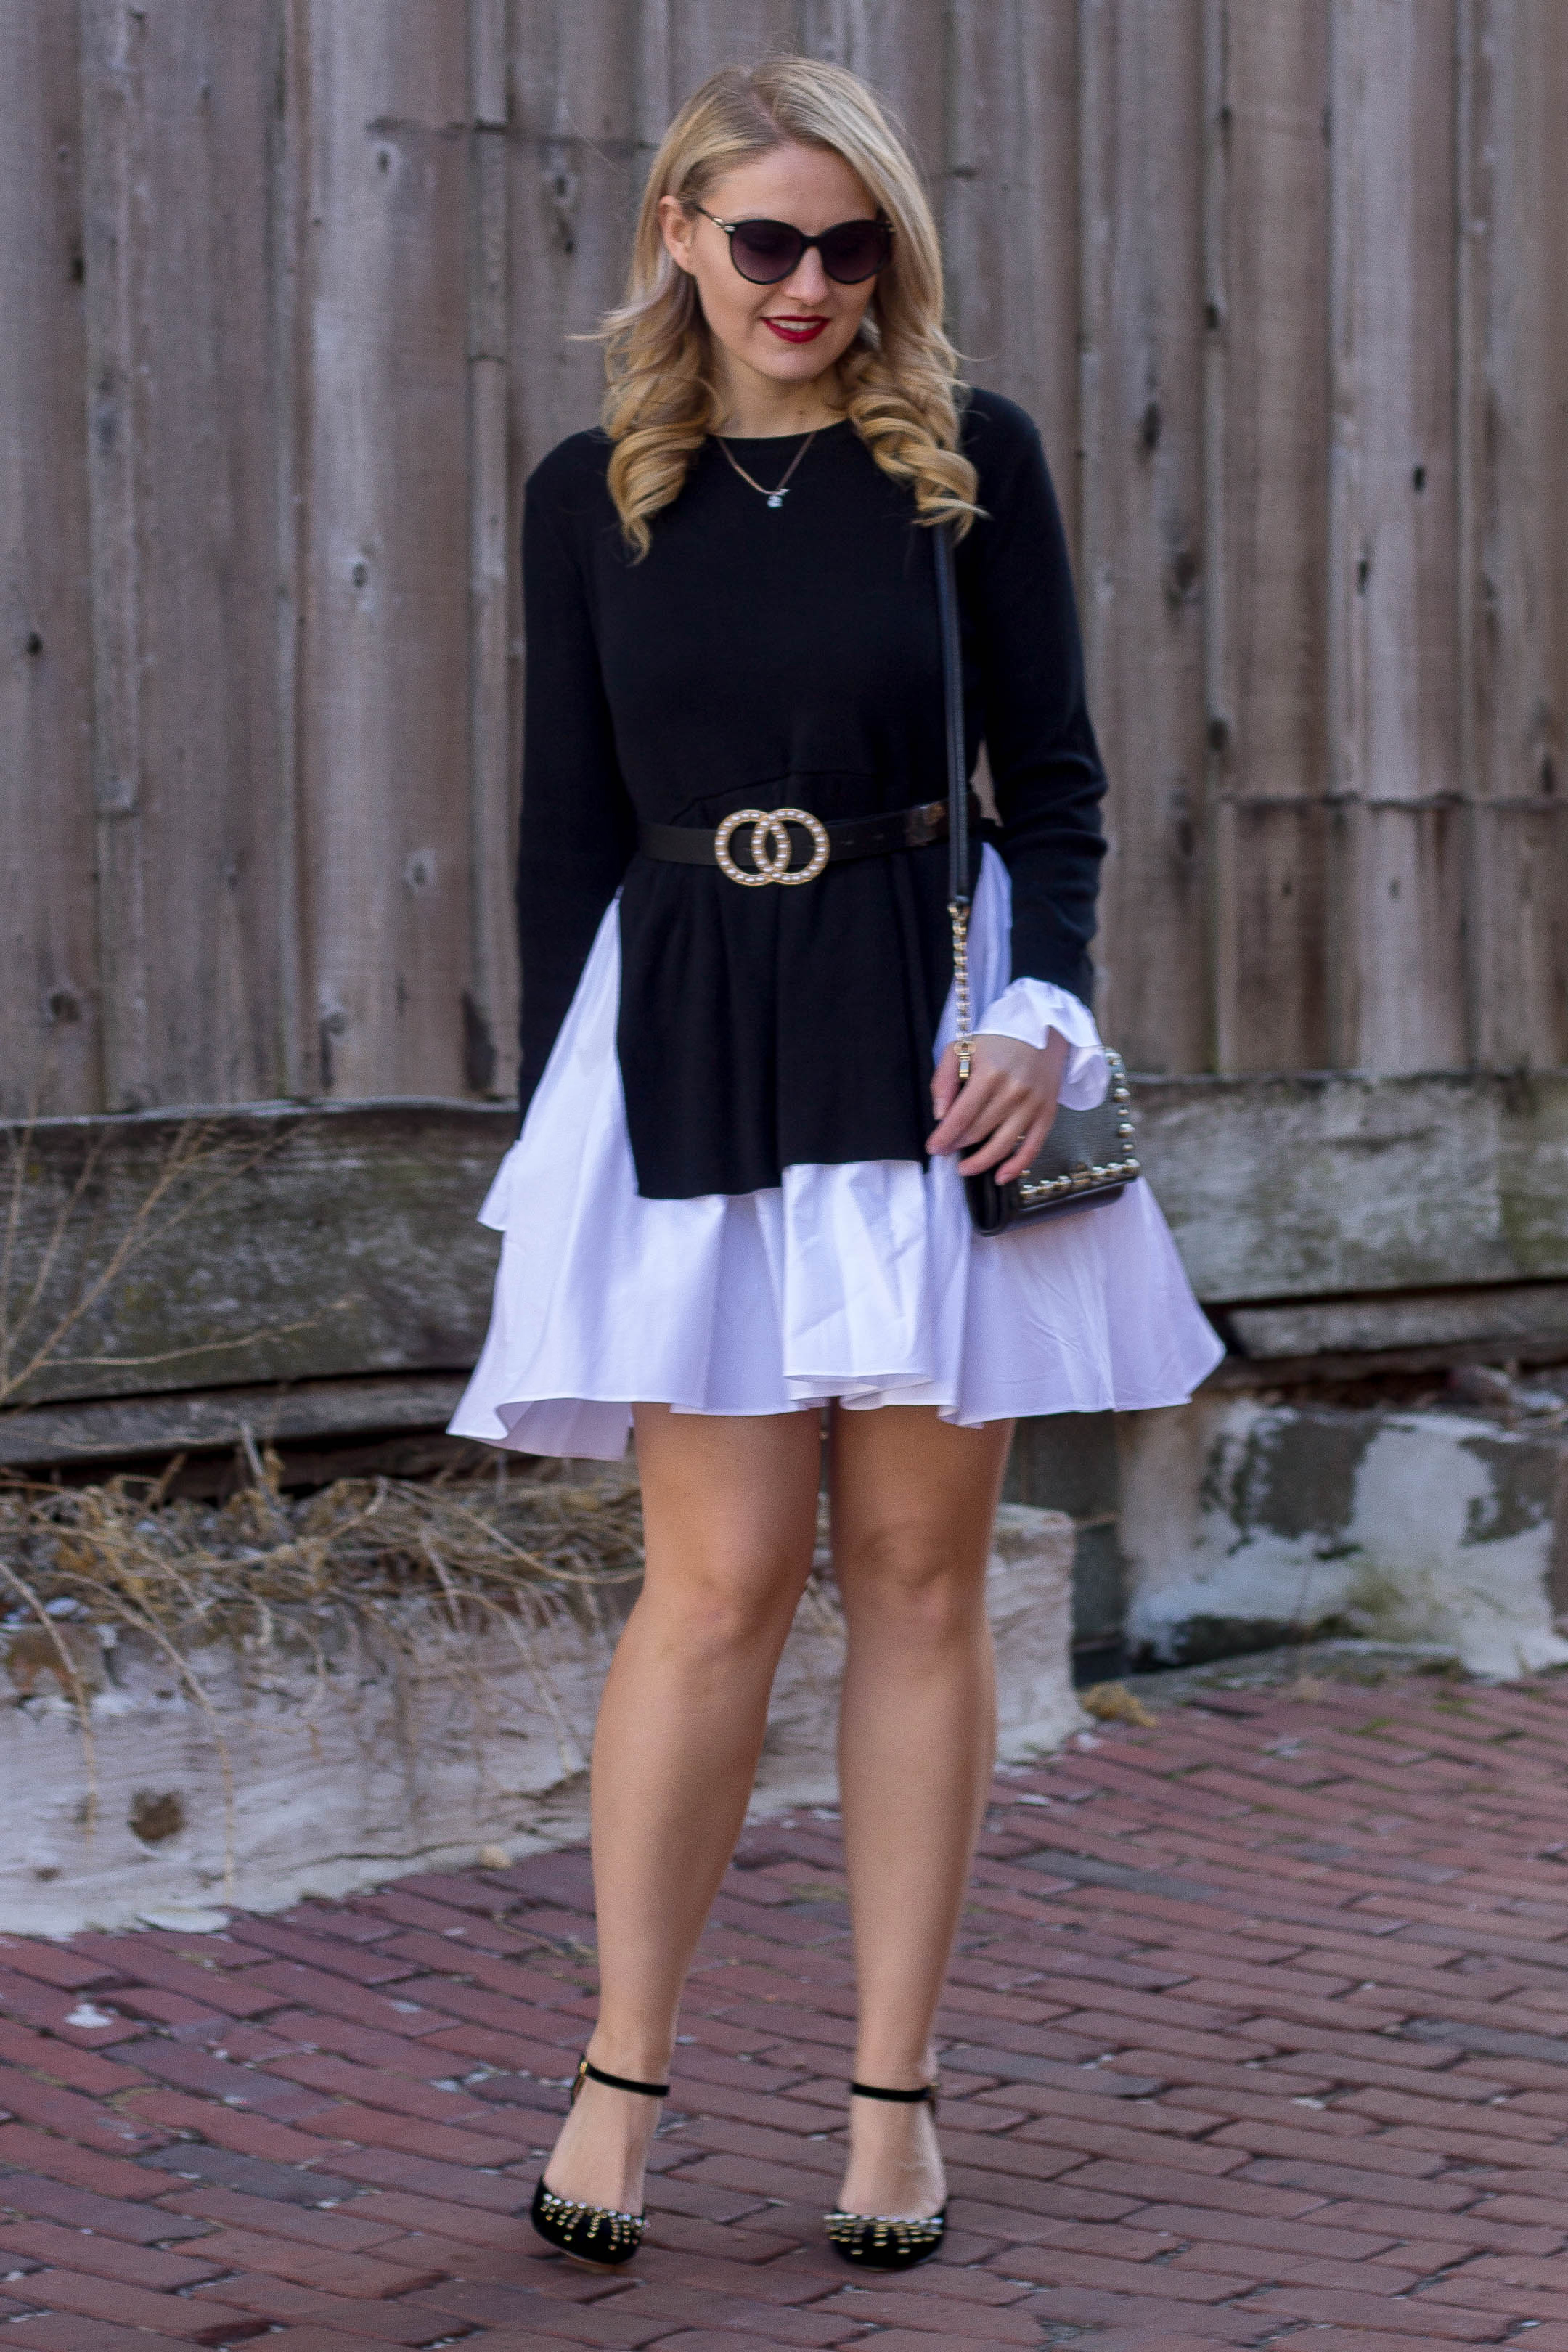 How to style a fit and flare sweater dress for date night